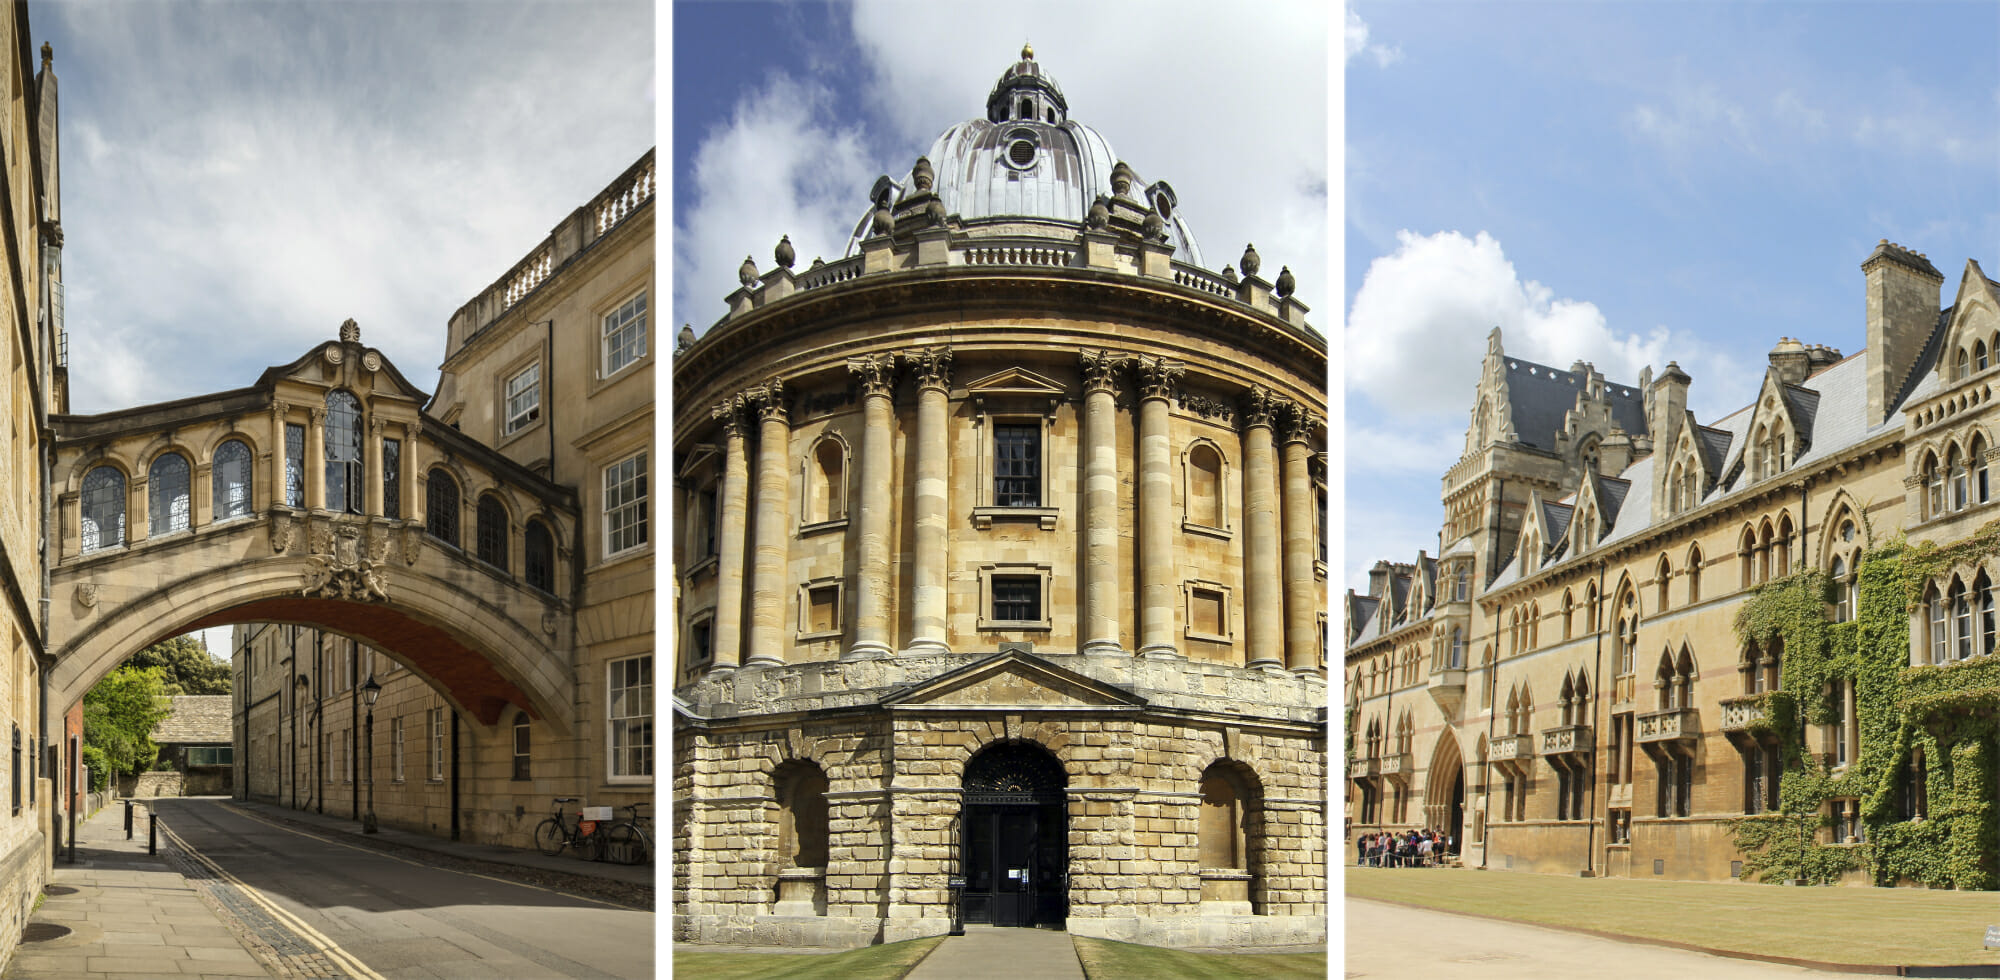 One Day in Oxford